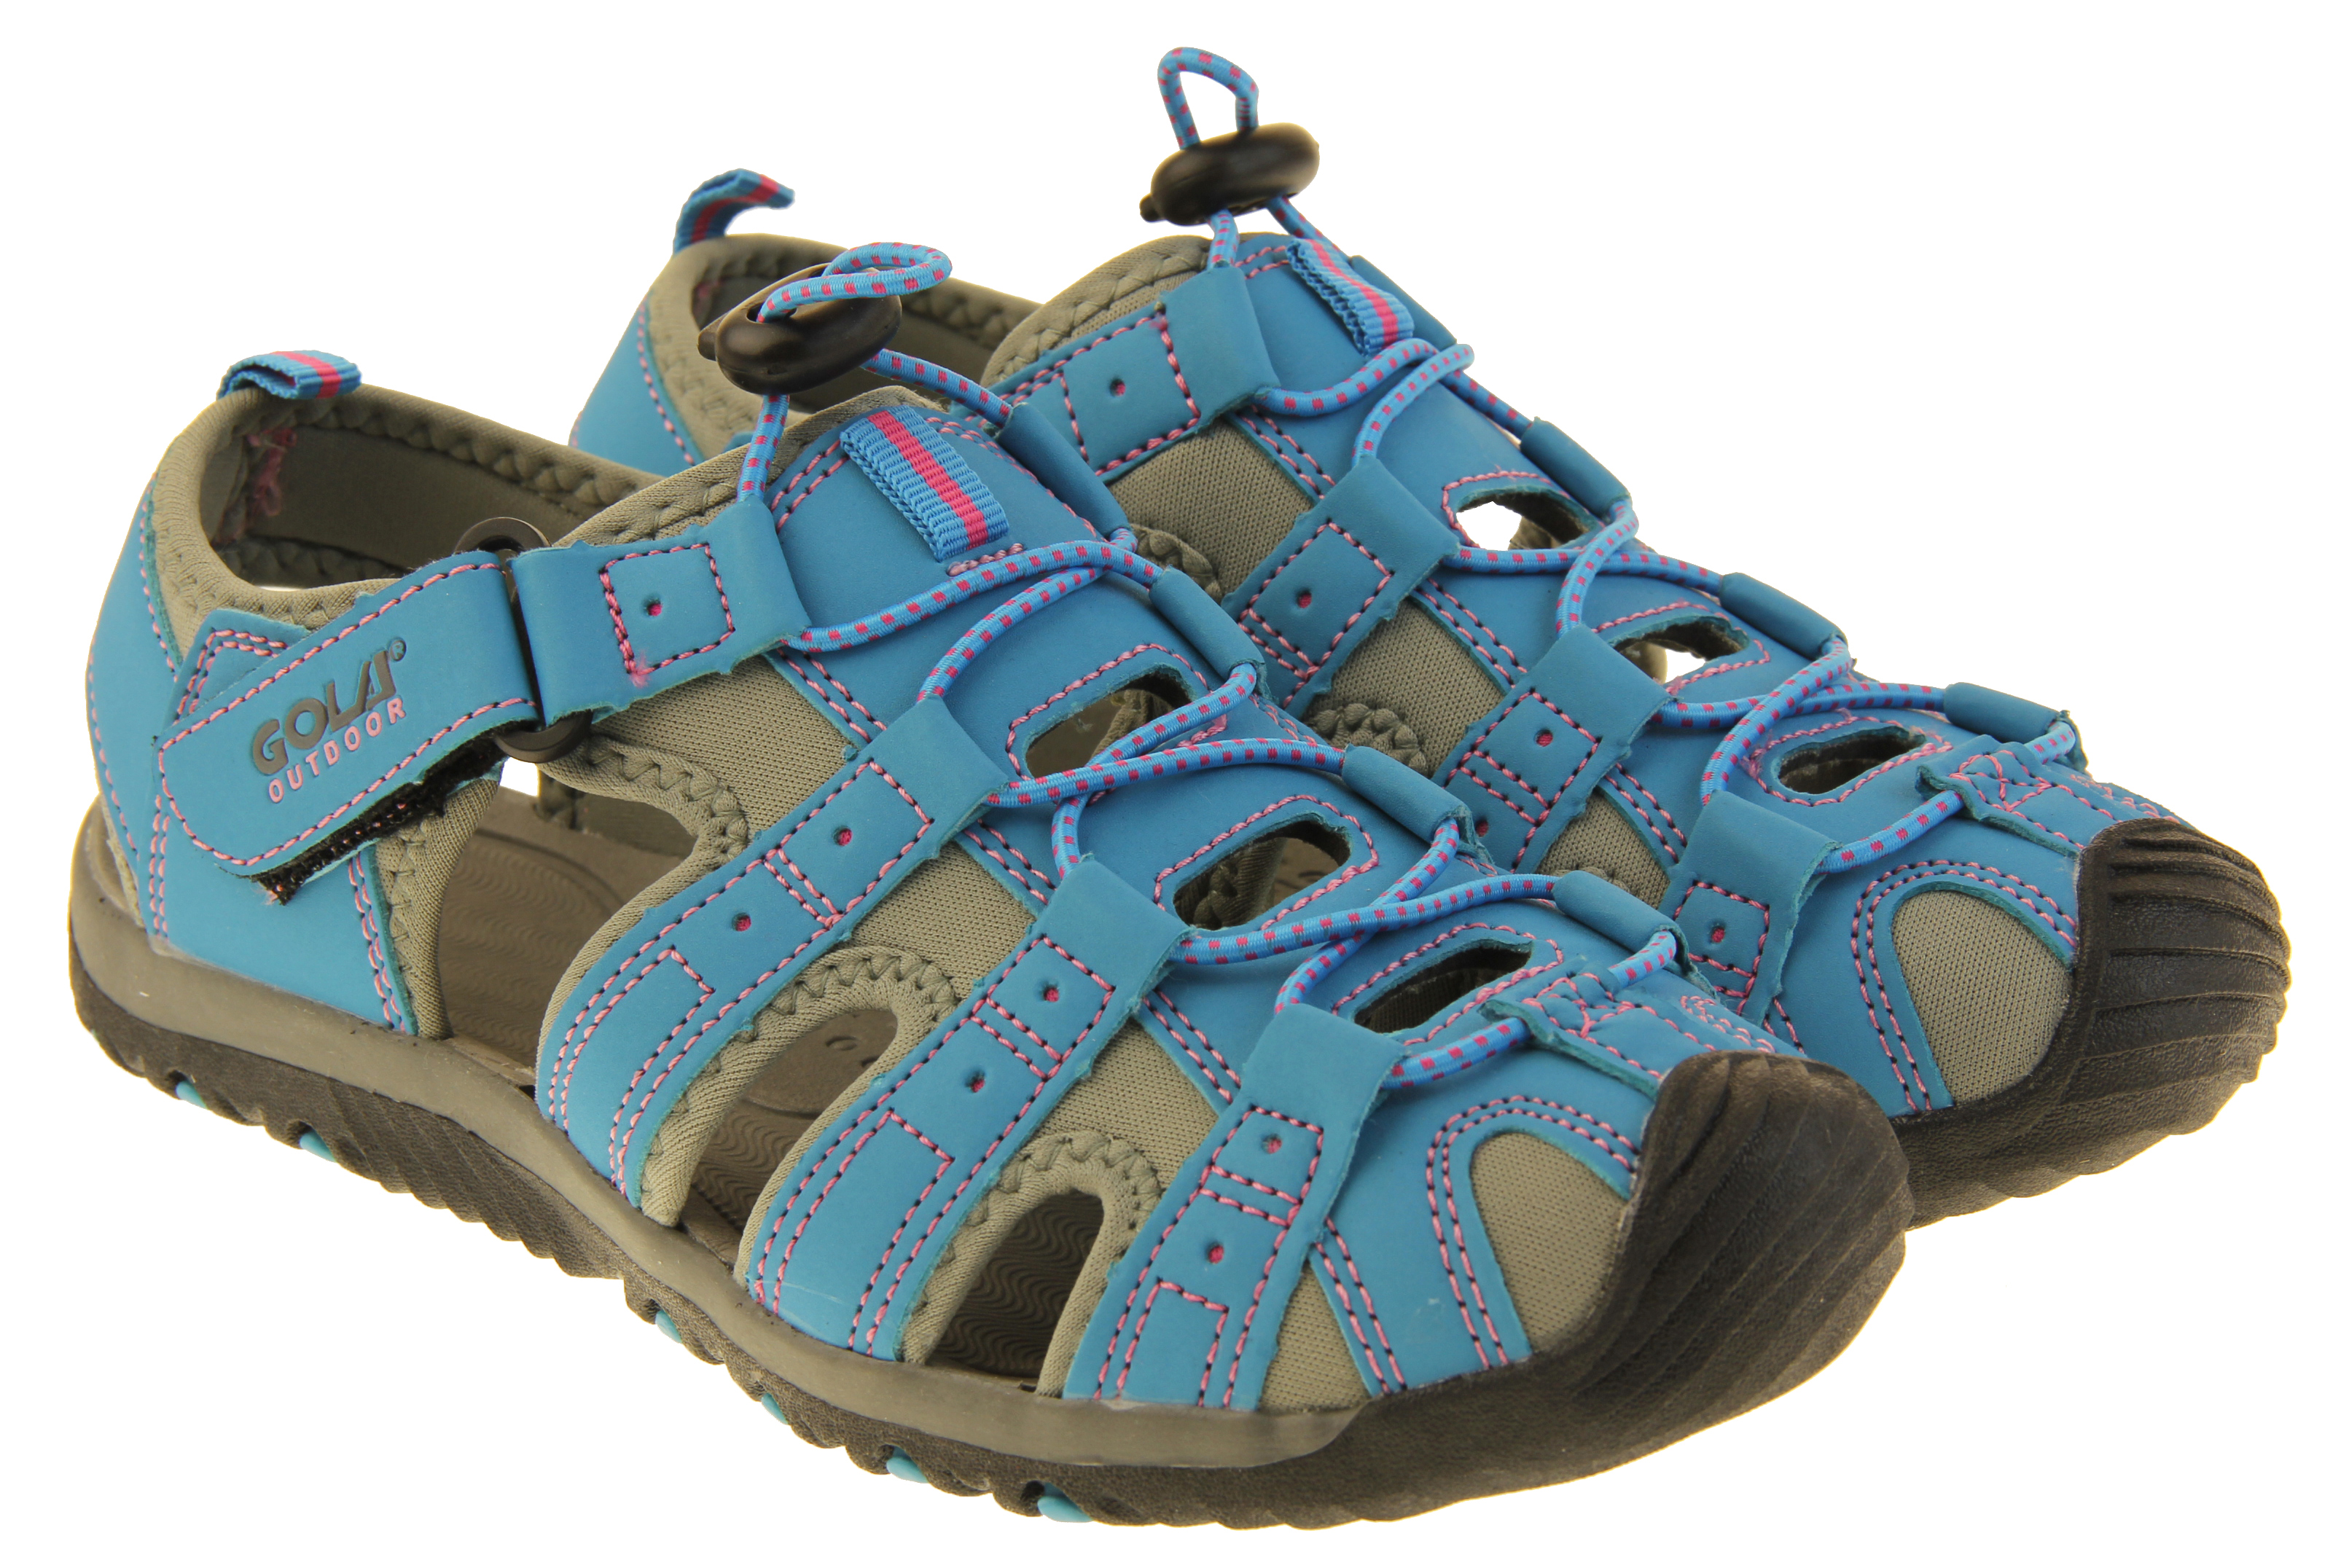 Womens Sports Sandals Ladies Outdoor Closed Toe Walking